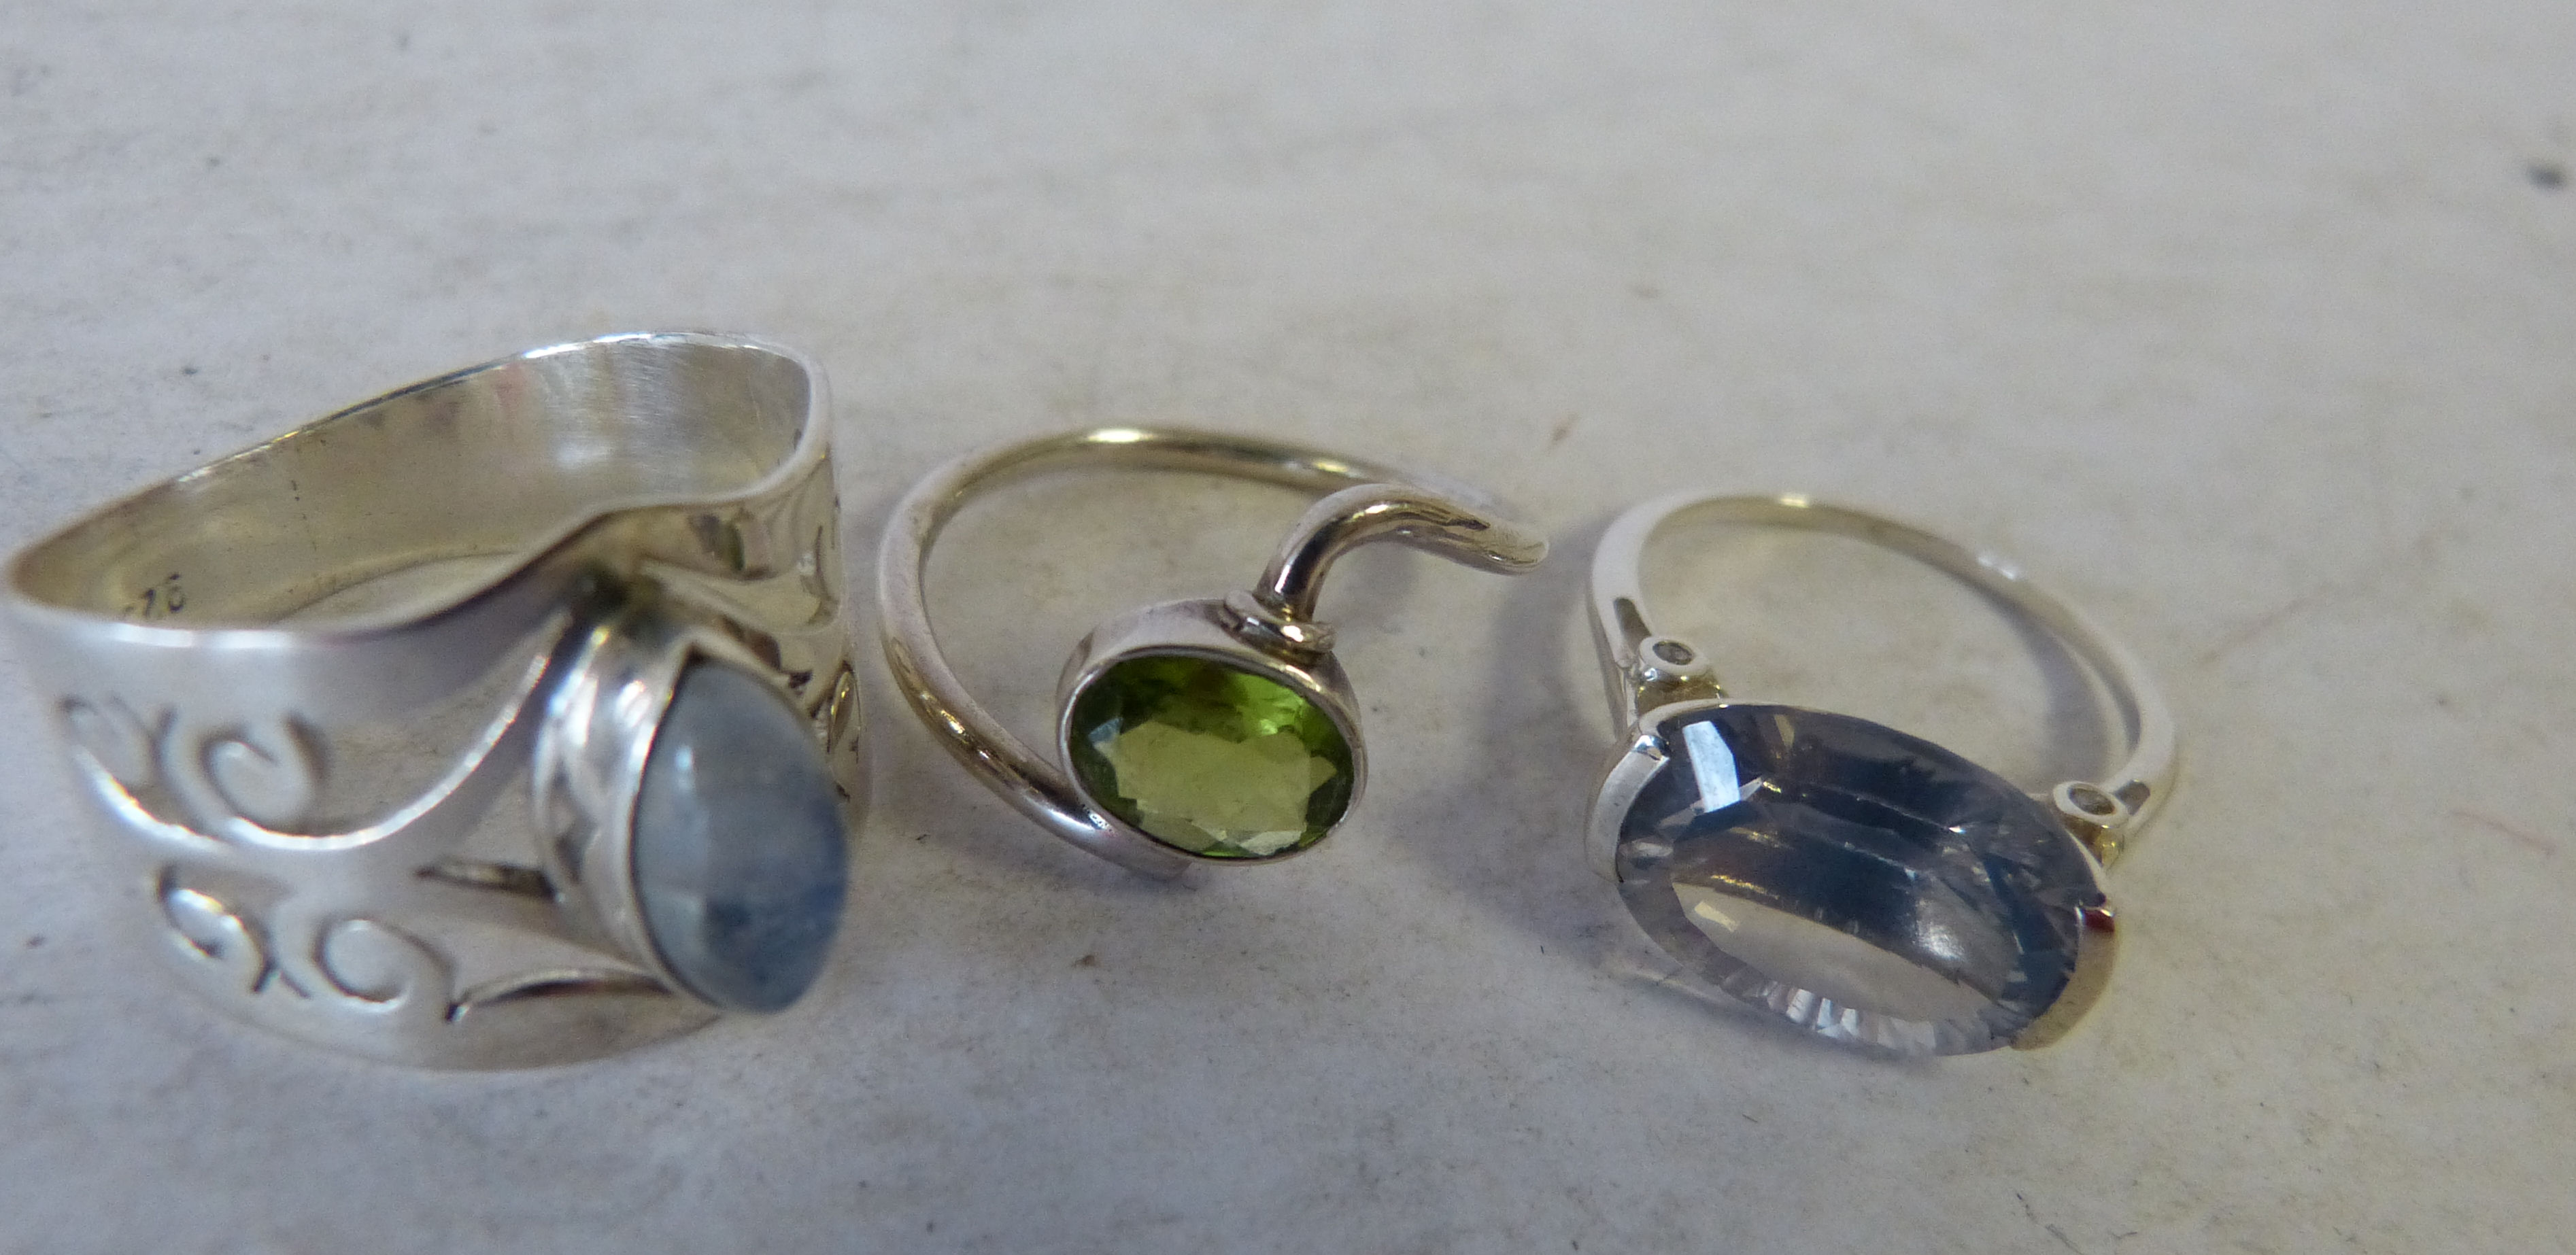 A Silver Ring Set with Eclipse Quartz, another similar ring and a silver ring set with Peridot